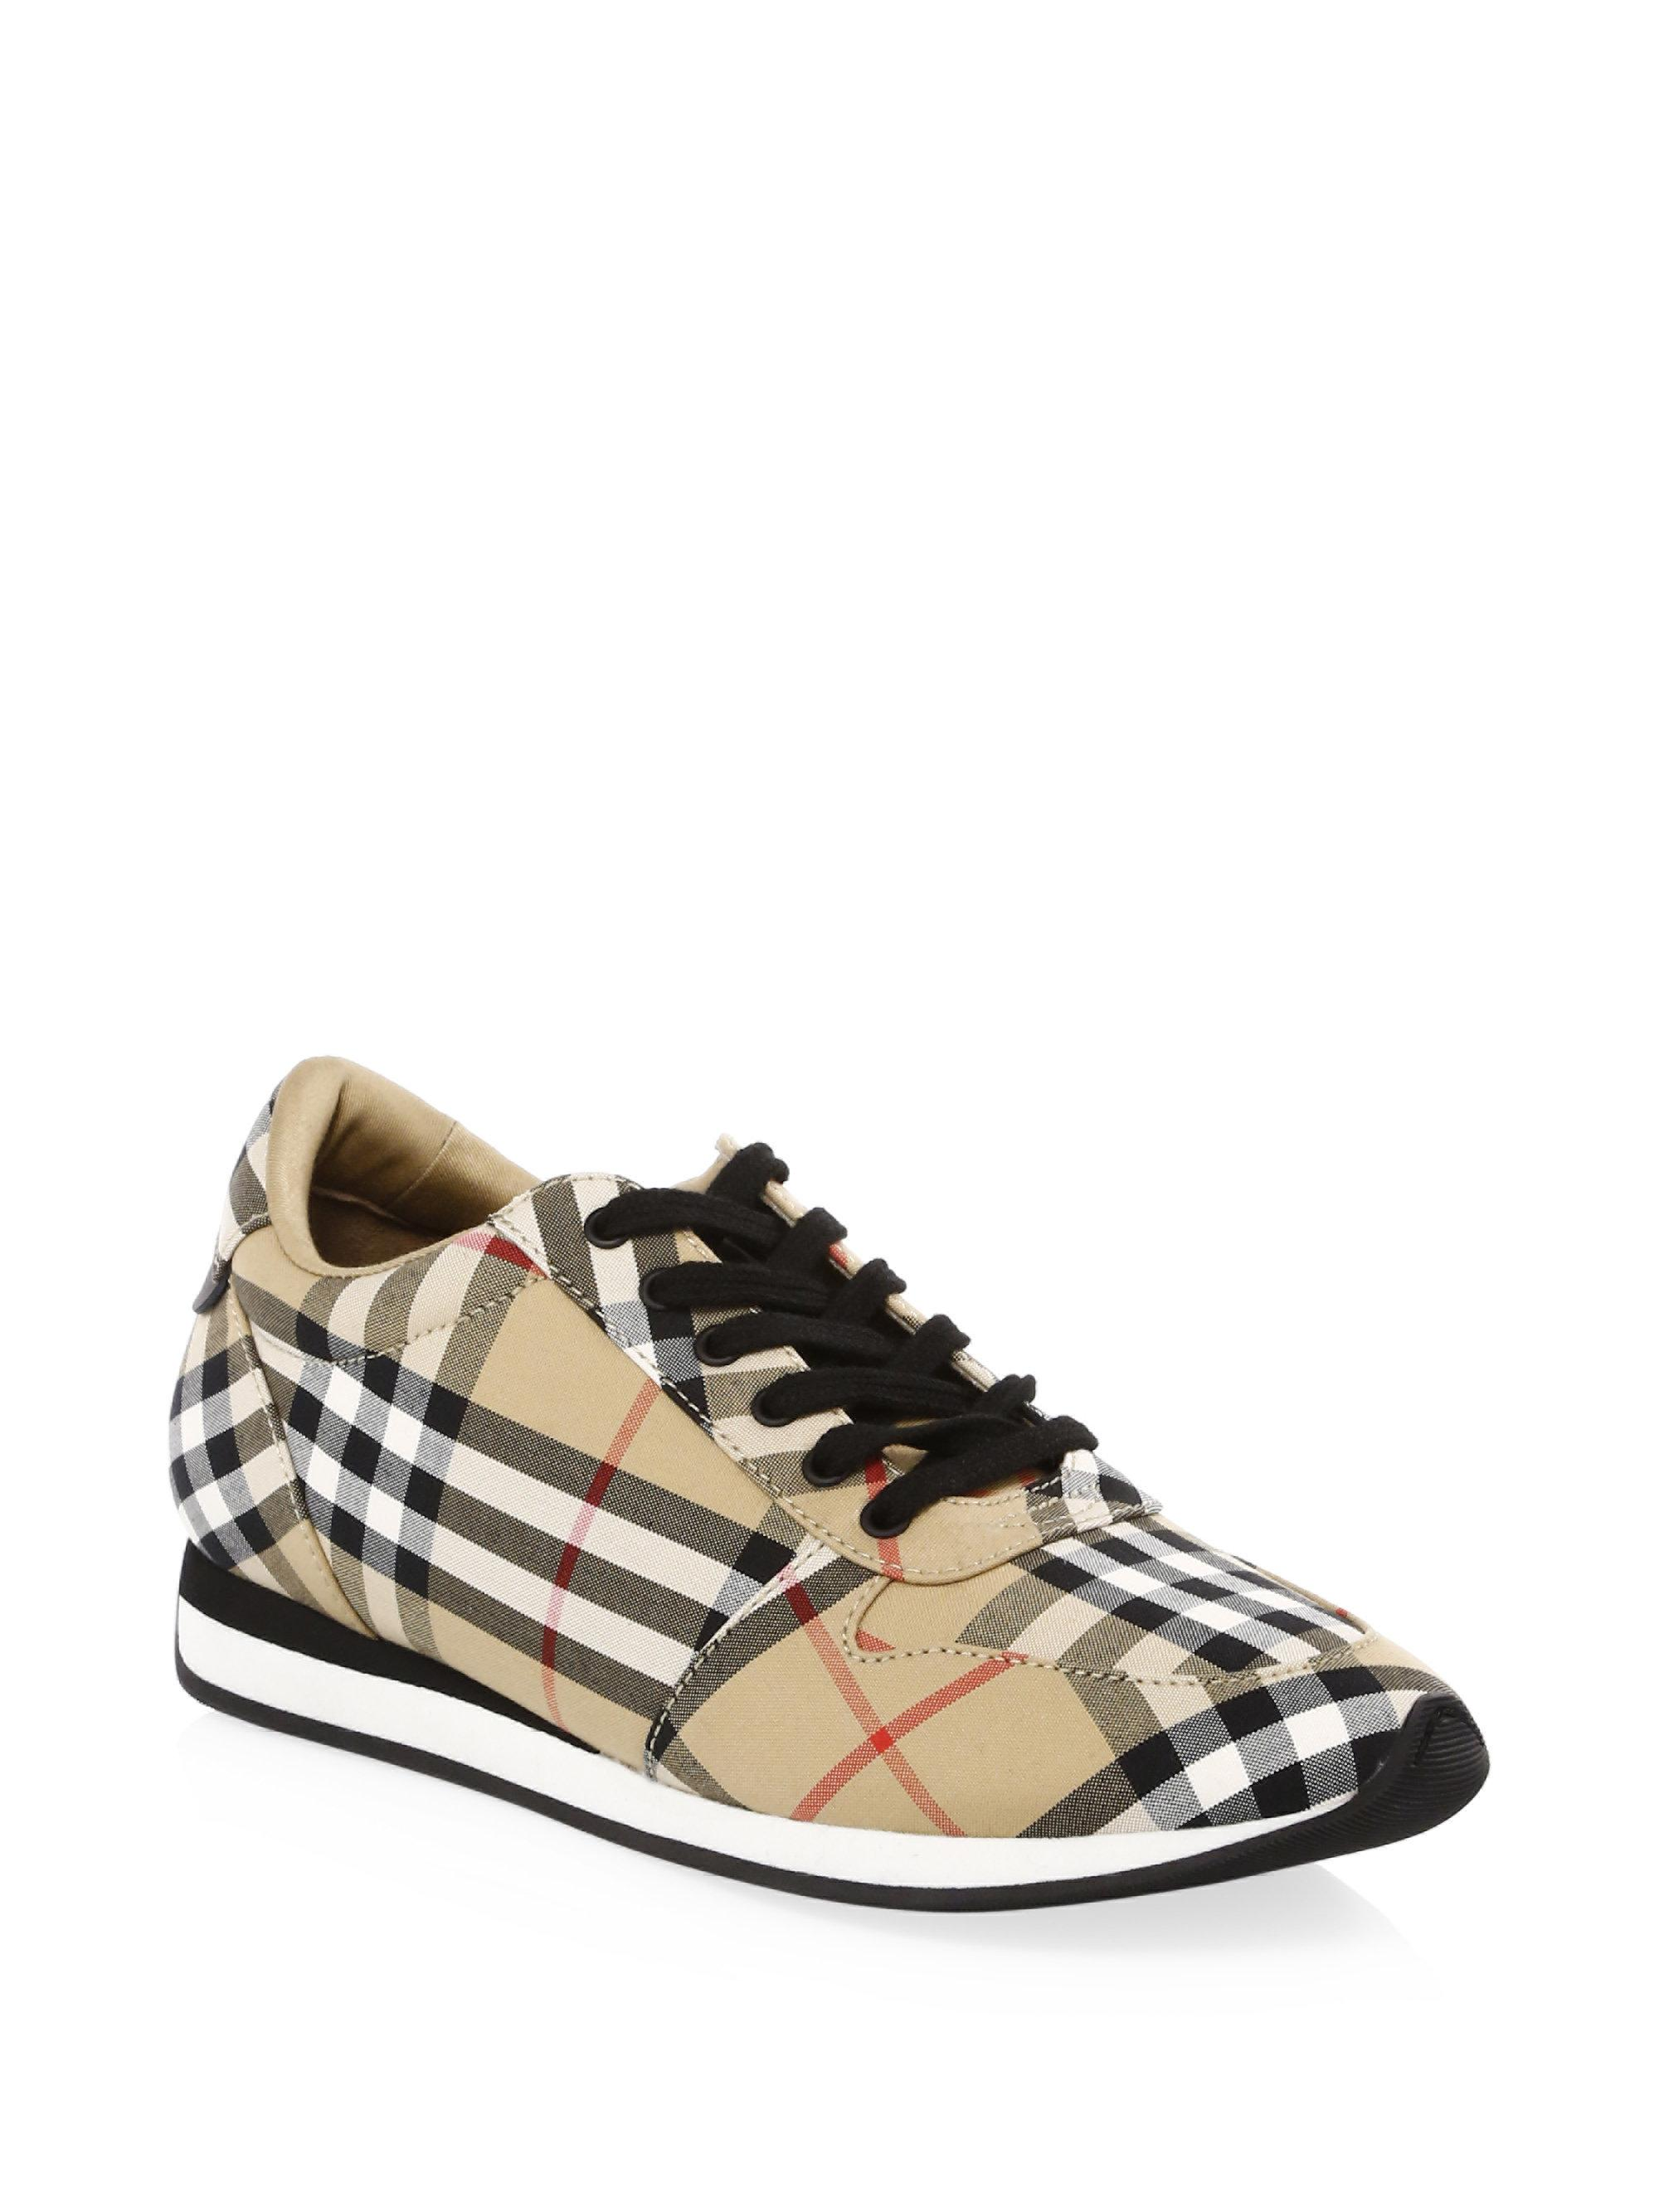 Burberry Amelia Antique Sneakers gTCLule